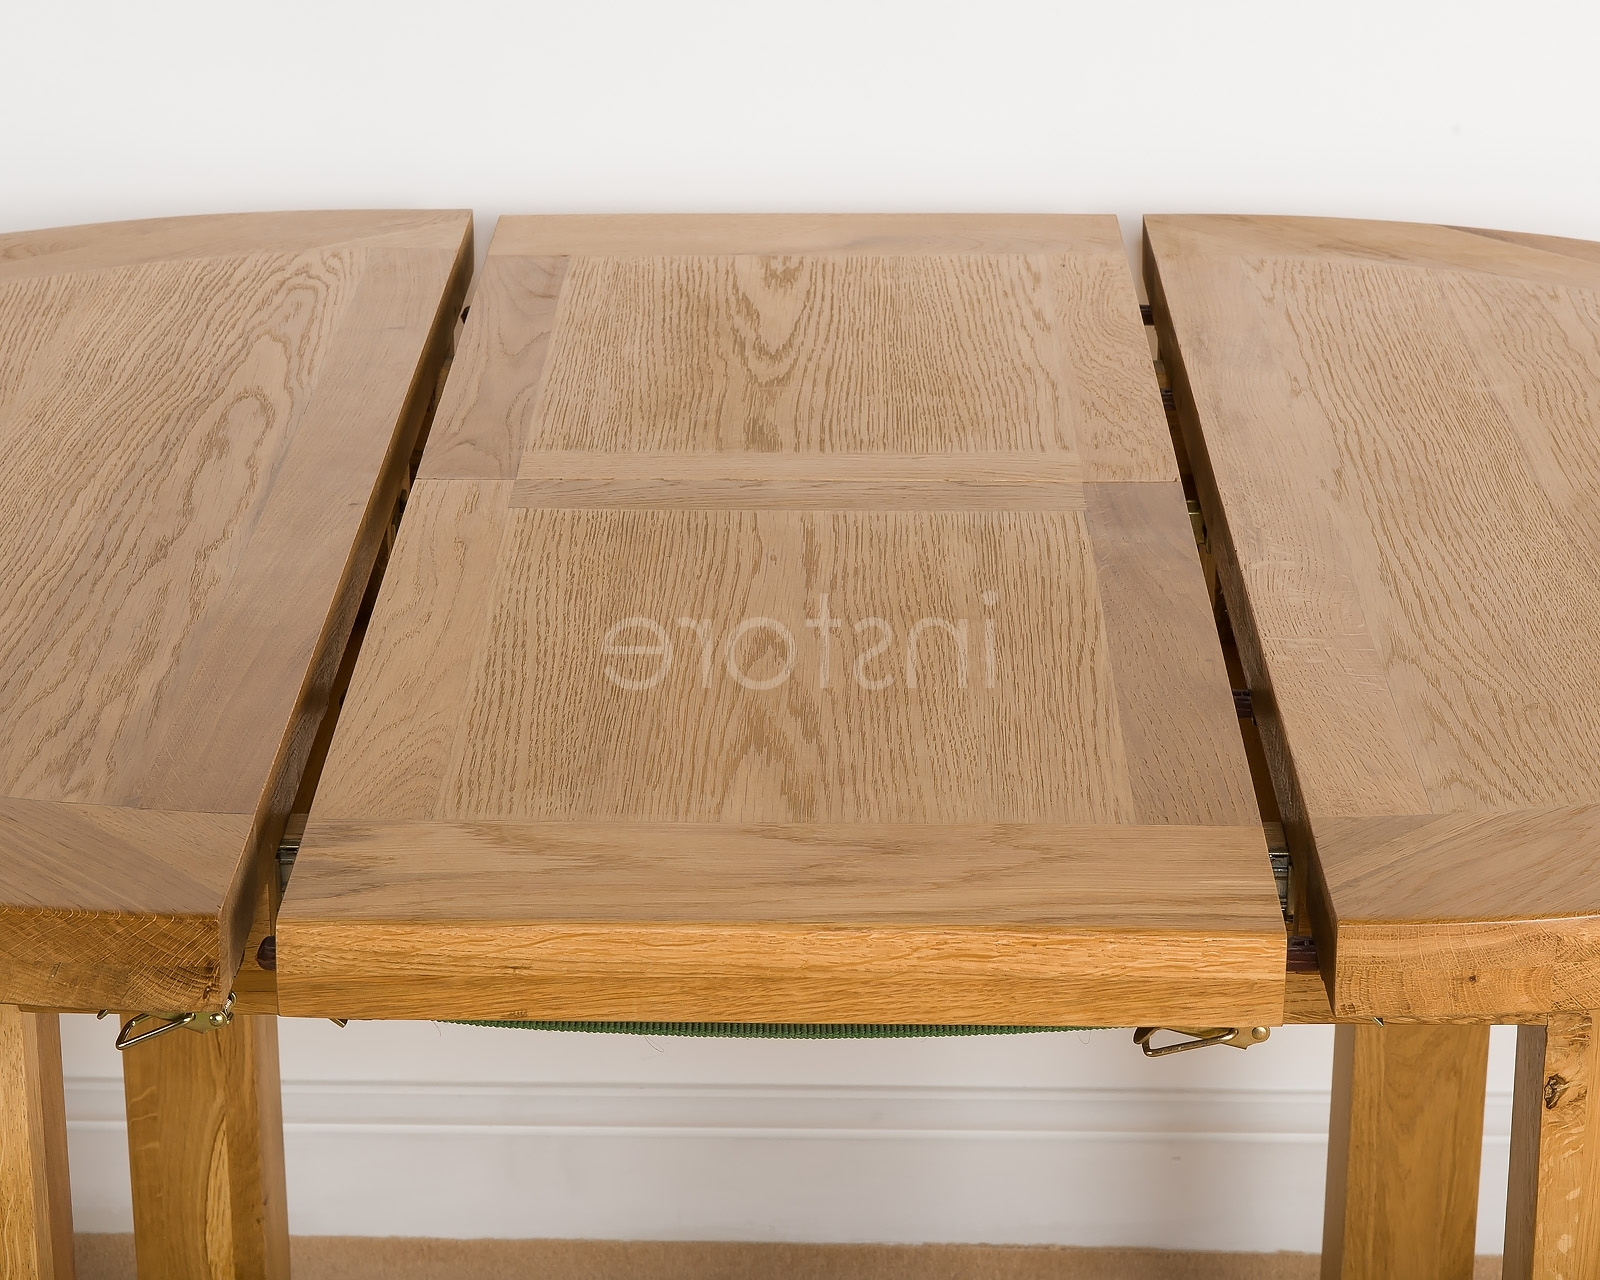 Loxley Round Extending Dining Table Pertaining To Well Known Round Extending Oak Dining Tables And Chairs (View 19 of 25)